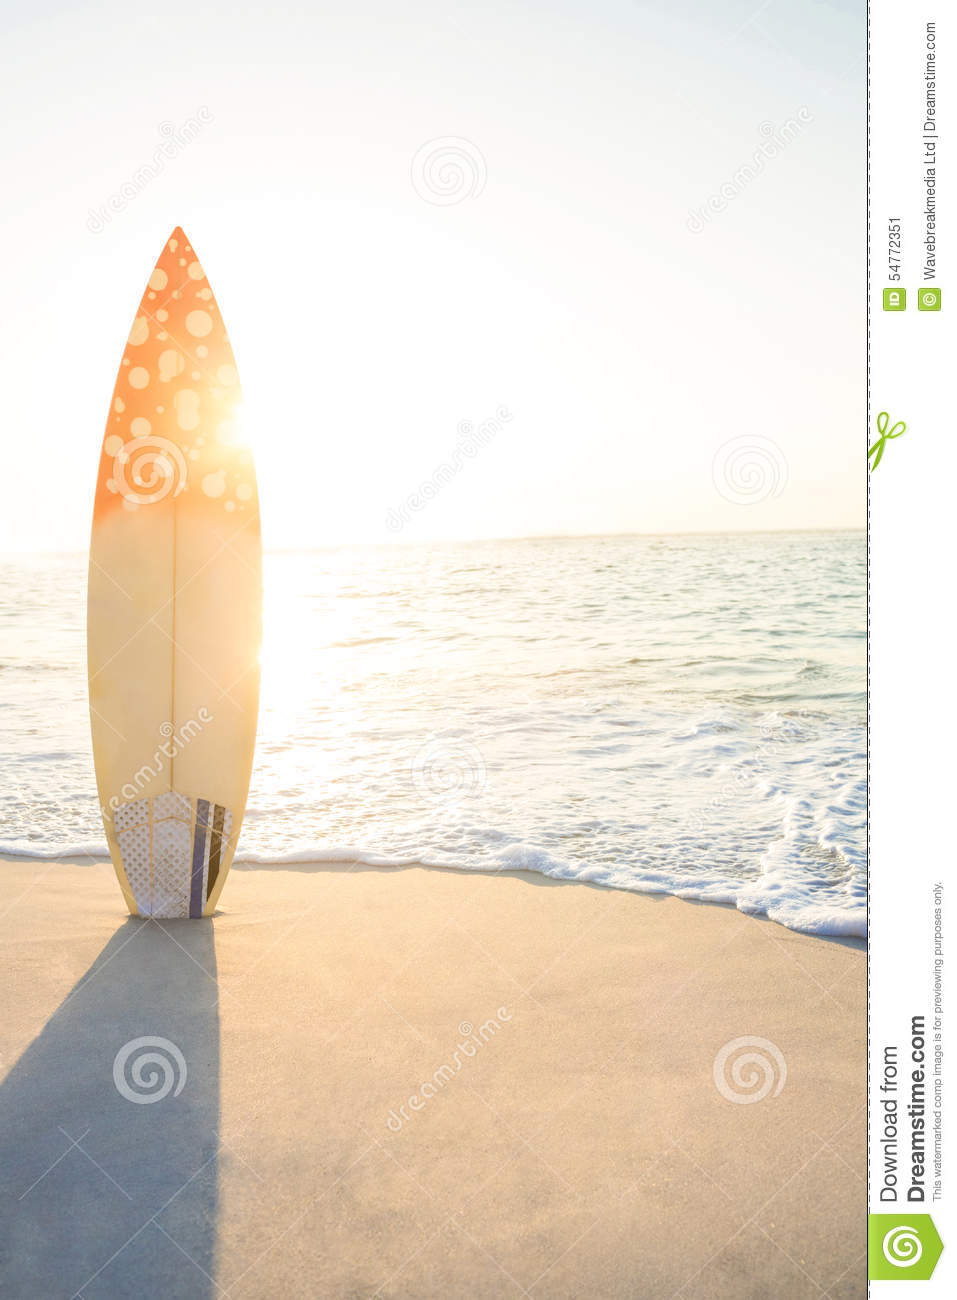 surf board standing on the sand